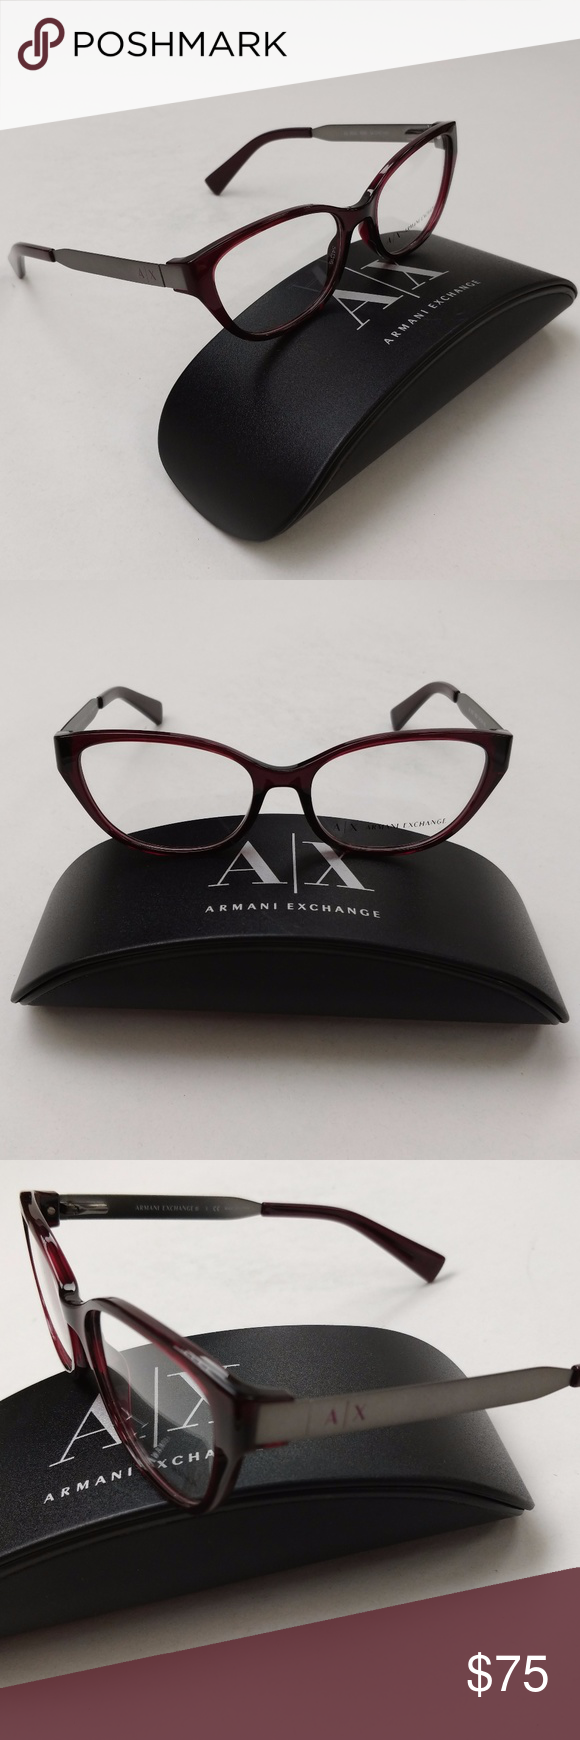 38b47e7a465e Armani Exchange AX3033 8003 Eyeglasses  EUI324 Excellent condition ...